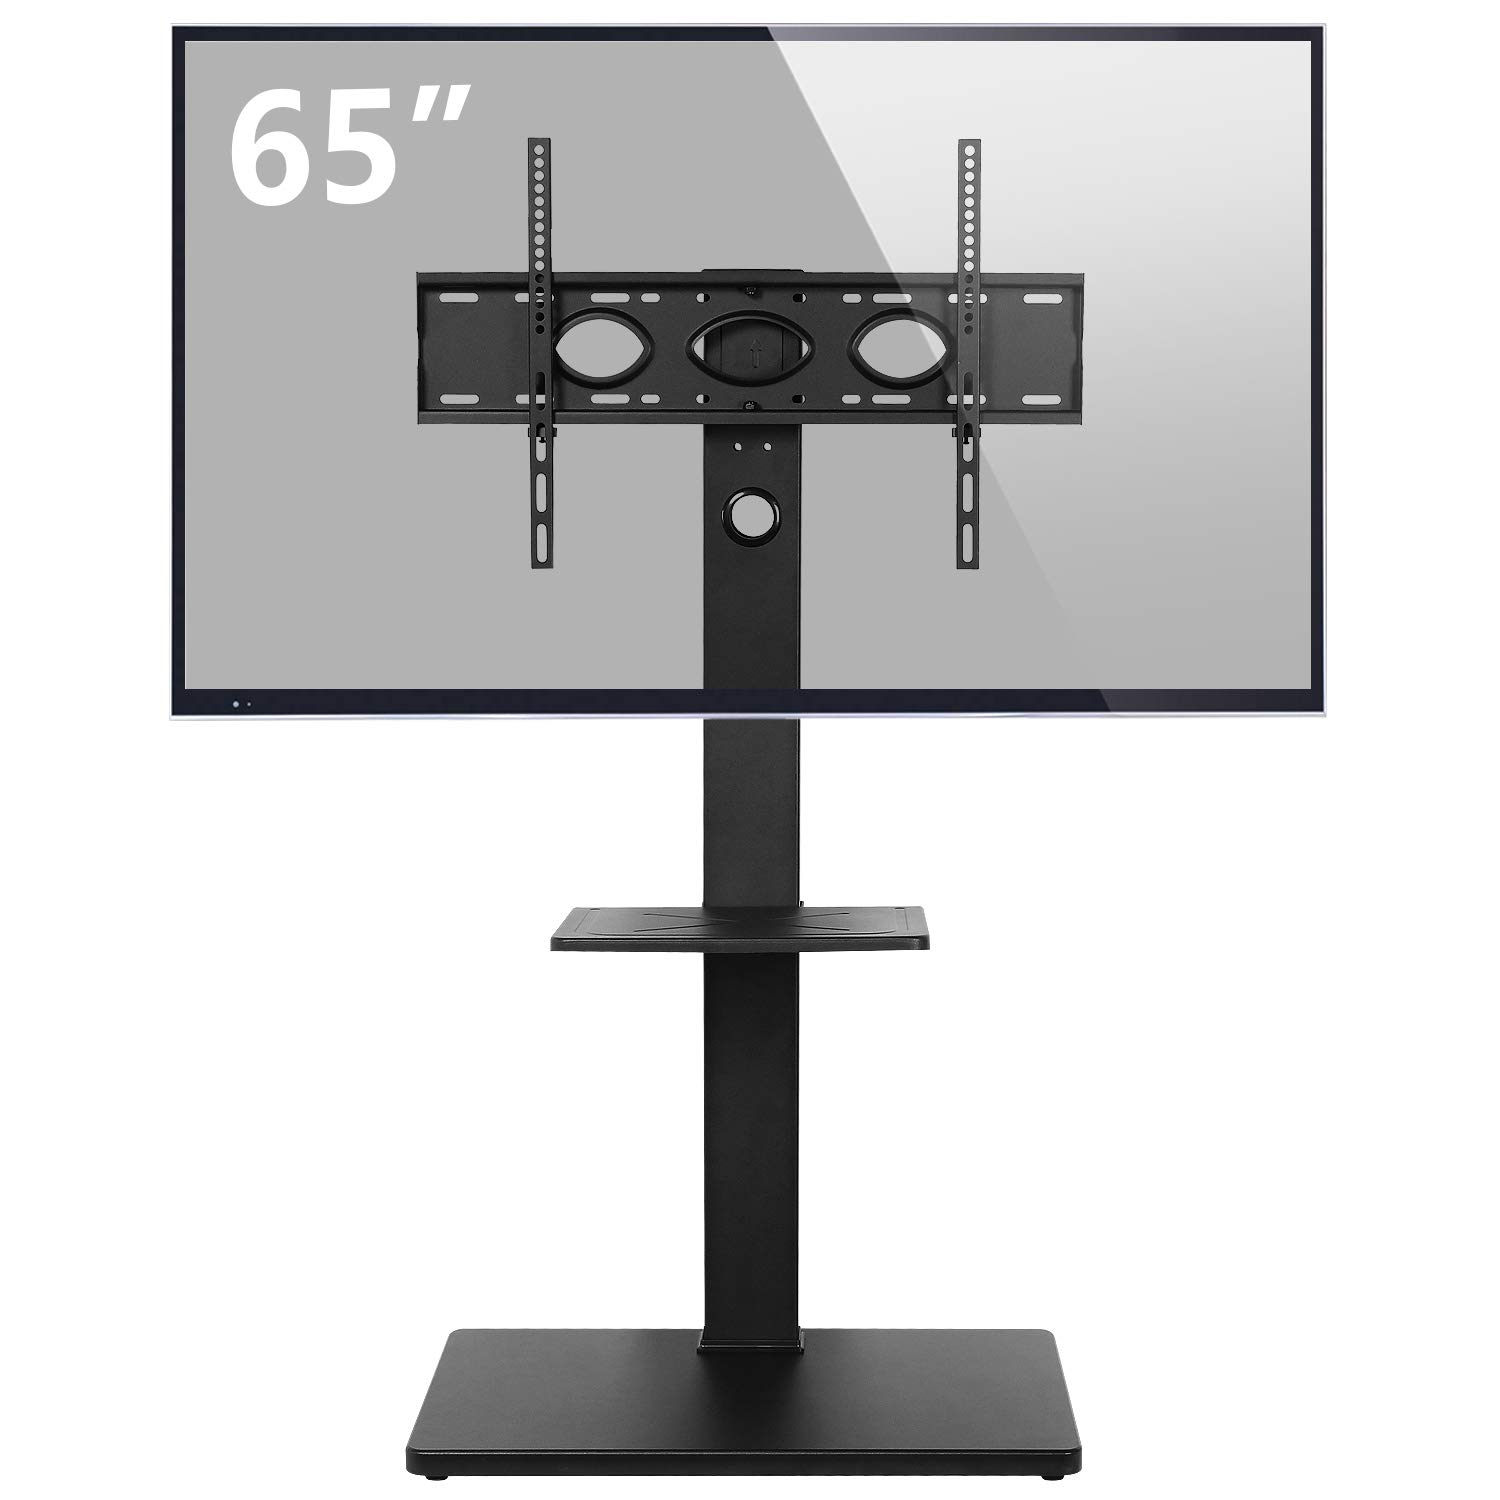 Rfiver Universal Swivel Floor TV Stand for most 32''-65'' Flat/Curved Screen TVs, 6 Levels Height Adjustable and Internal Cable Management, One-Piece Integral Metal Support Pole for Sturdy, Black TF1001 by Rfiver